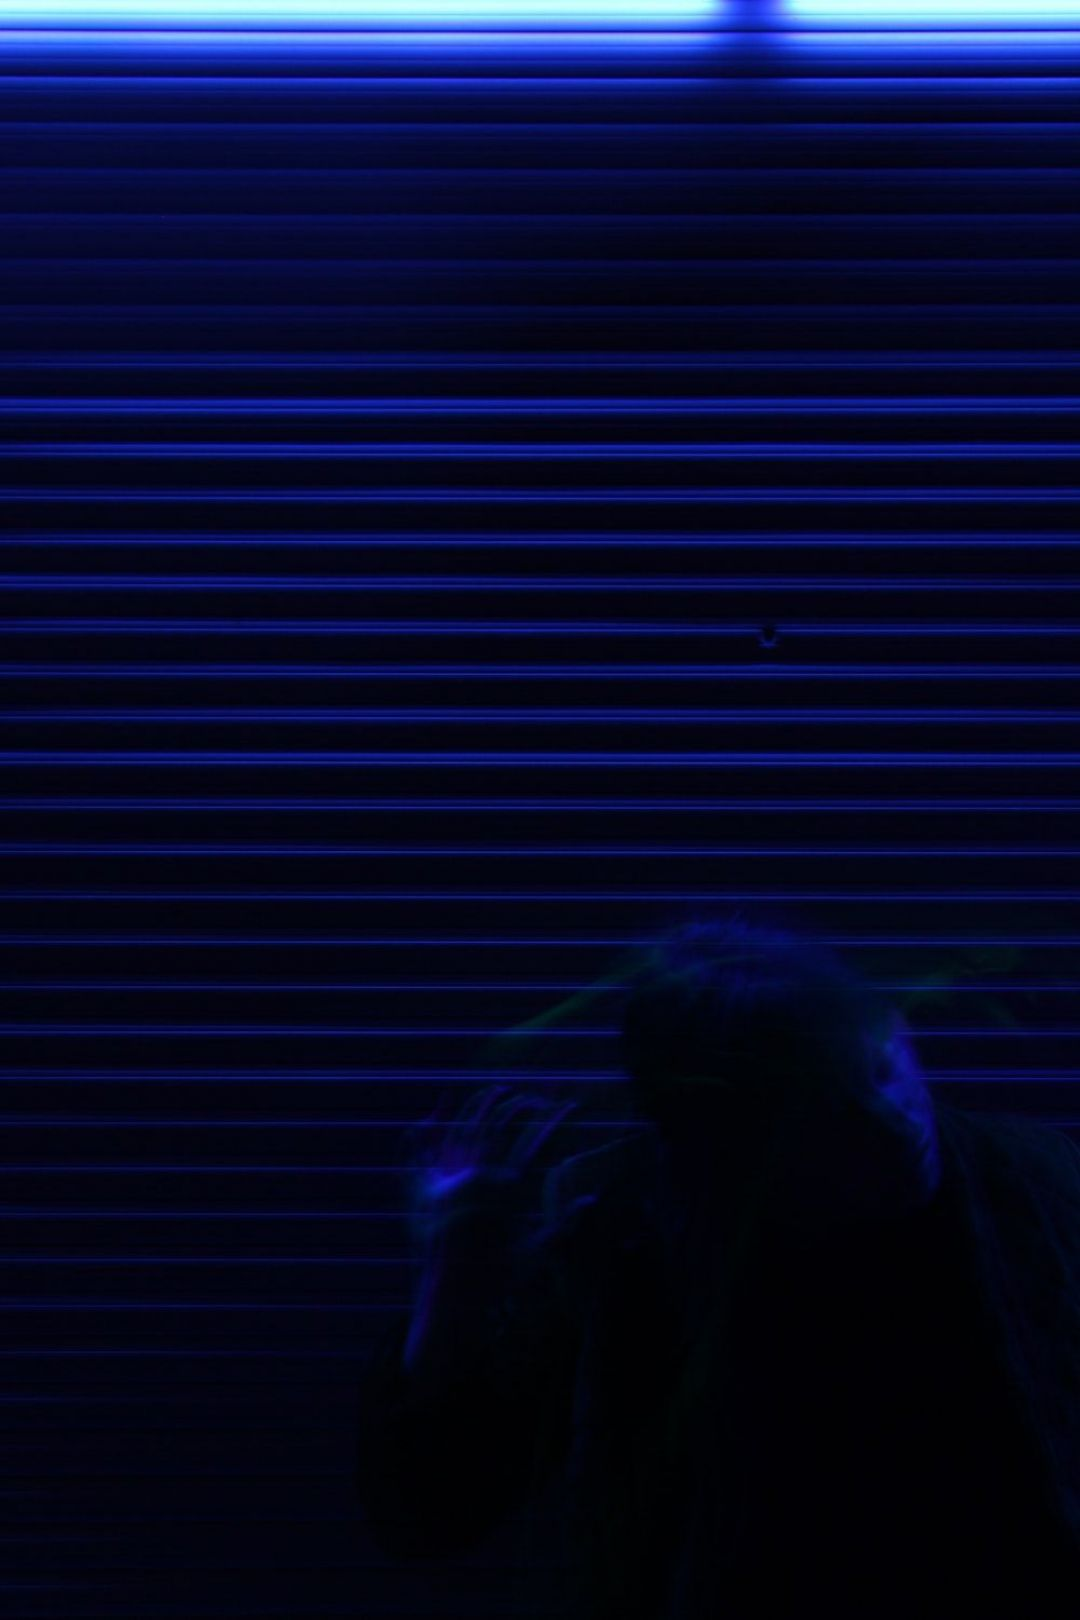 35 Dark Blue Aesthetic Tumblr Android Iphone Desktop Hd Backgrounds Wallpapers 1080p 4k 1080x1620 2020